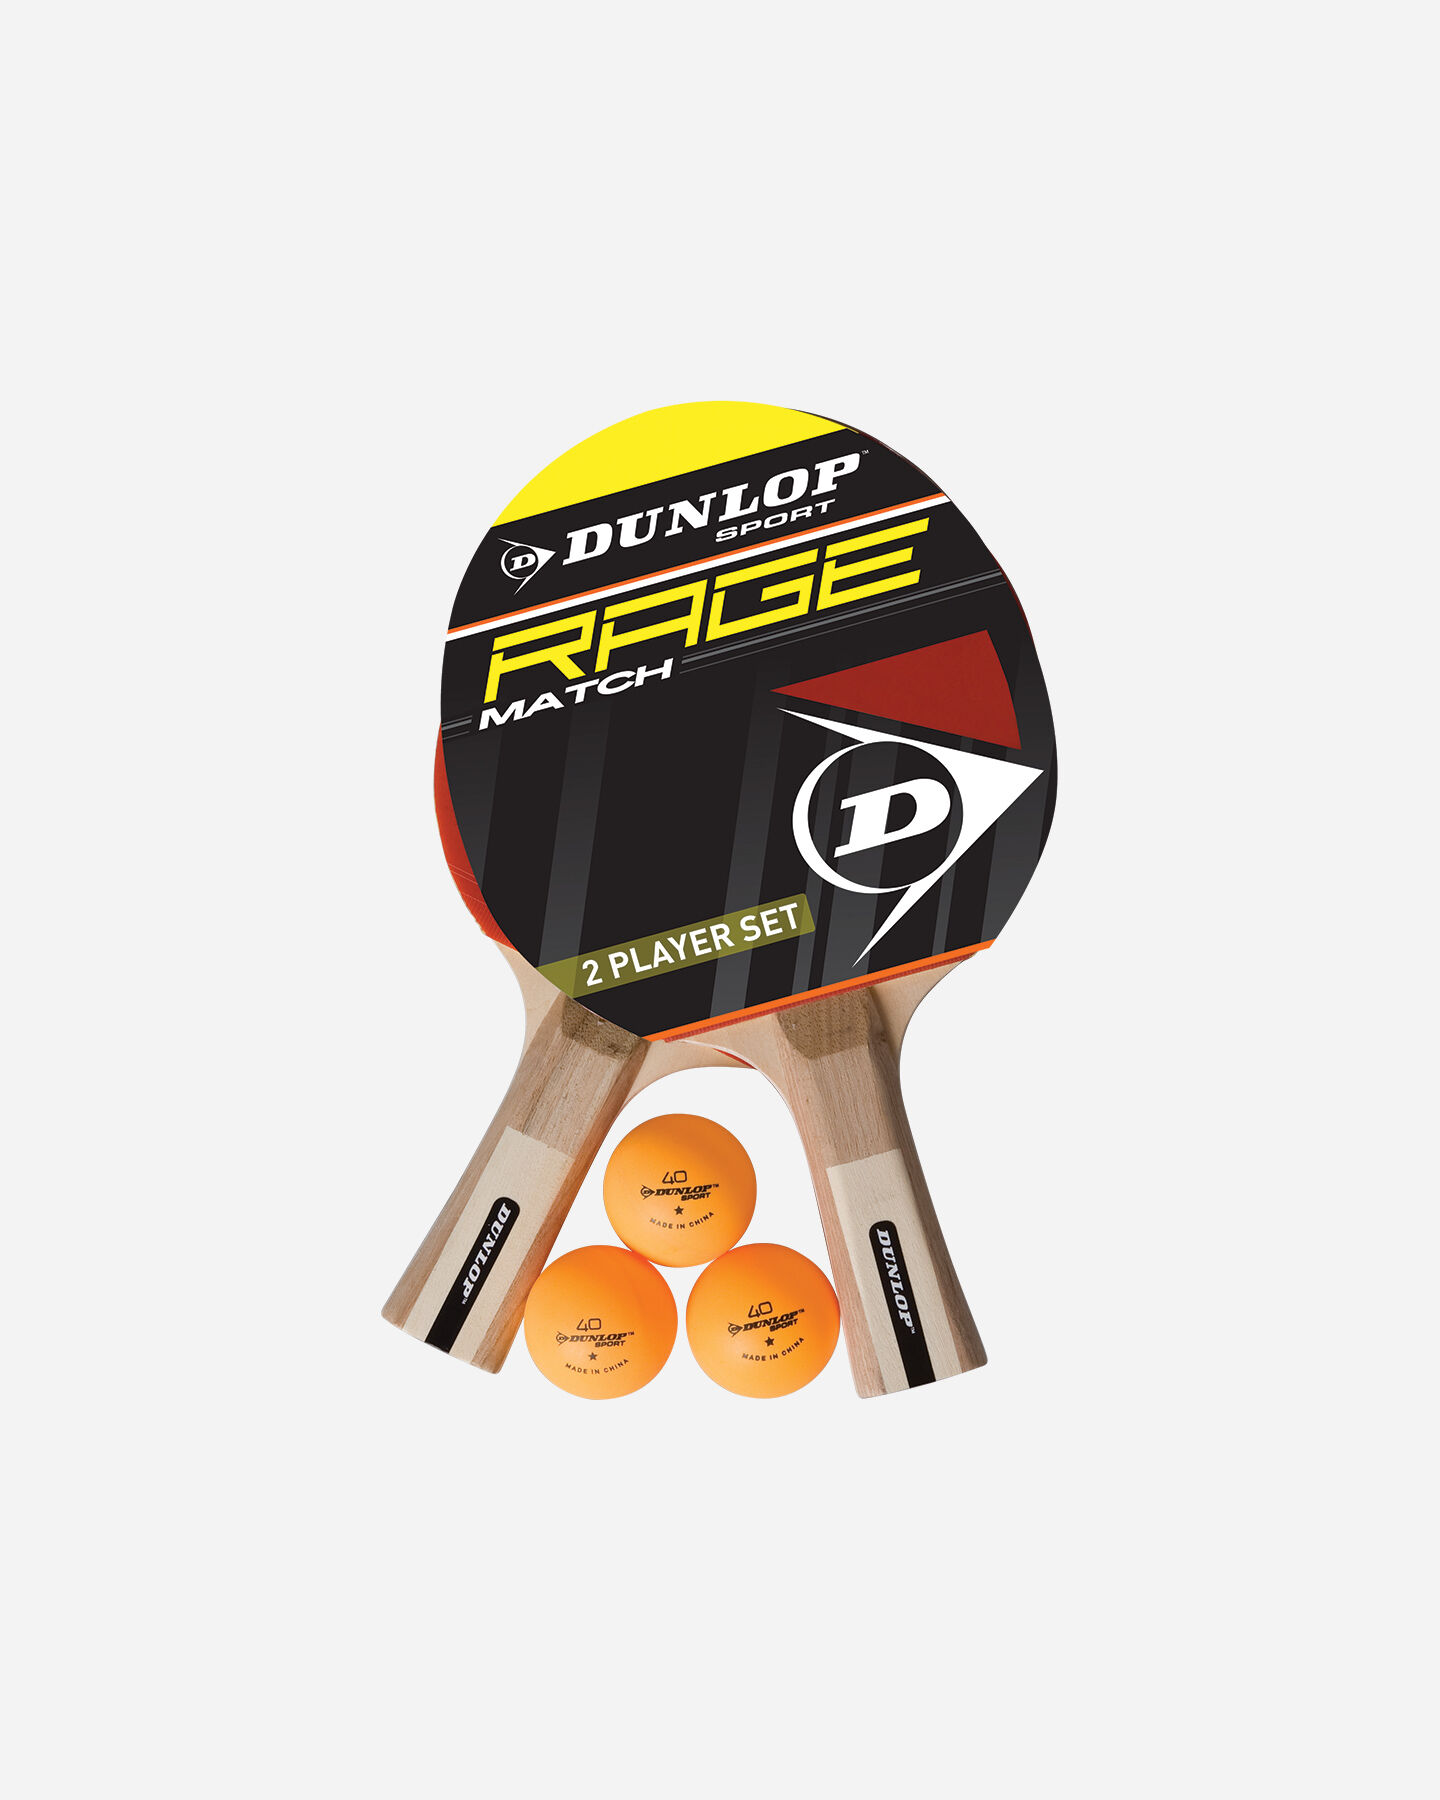 Accessorio ping pong DUNLOP SET RAGE 2 PLAYER S2006320|019|UNI scatto 0